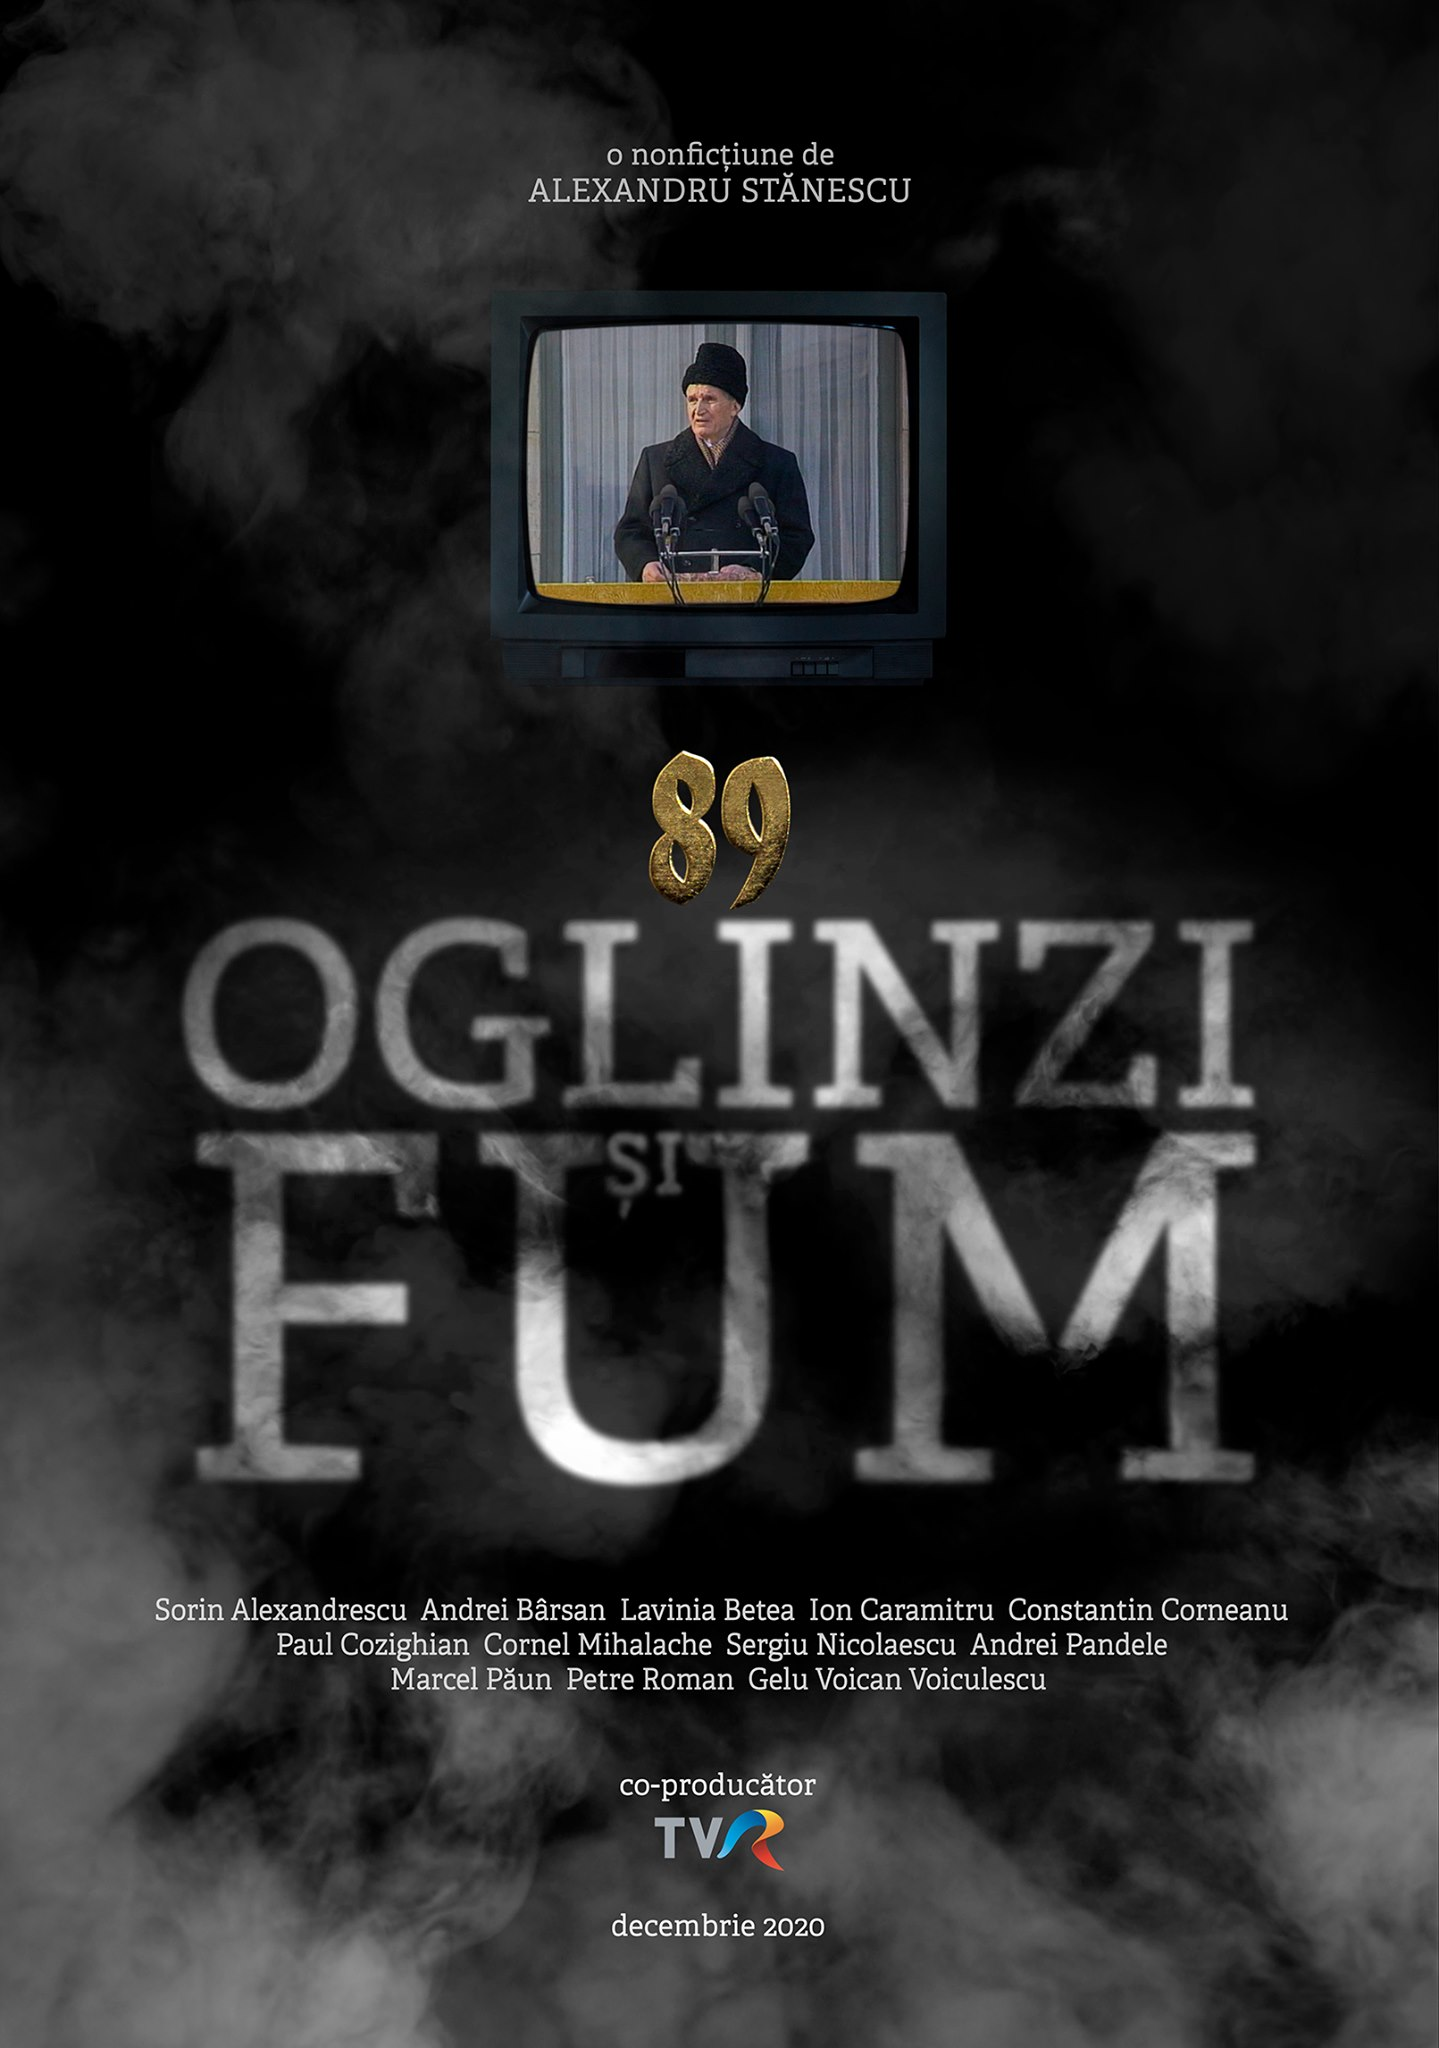 89: Oglinzi și fum (2020) - Photo